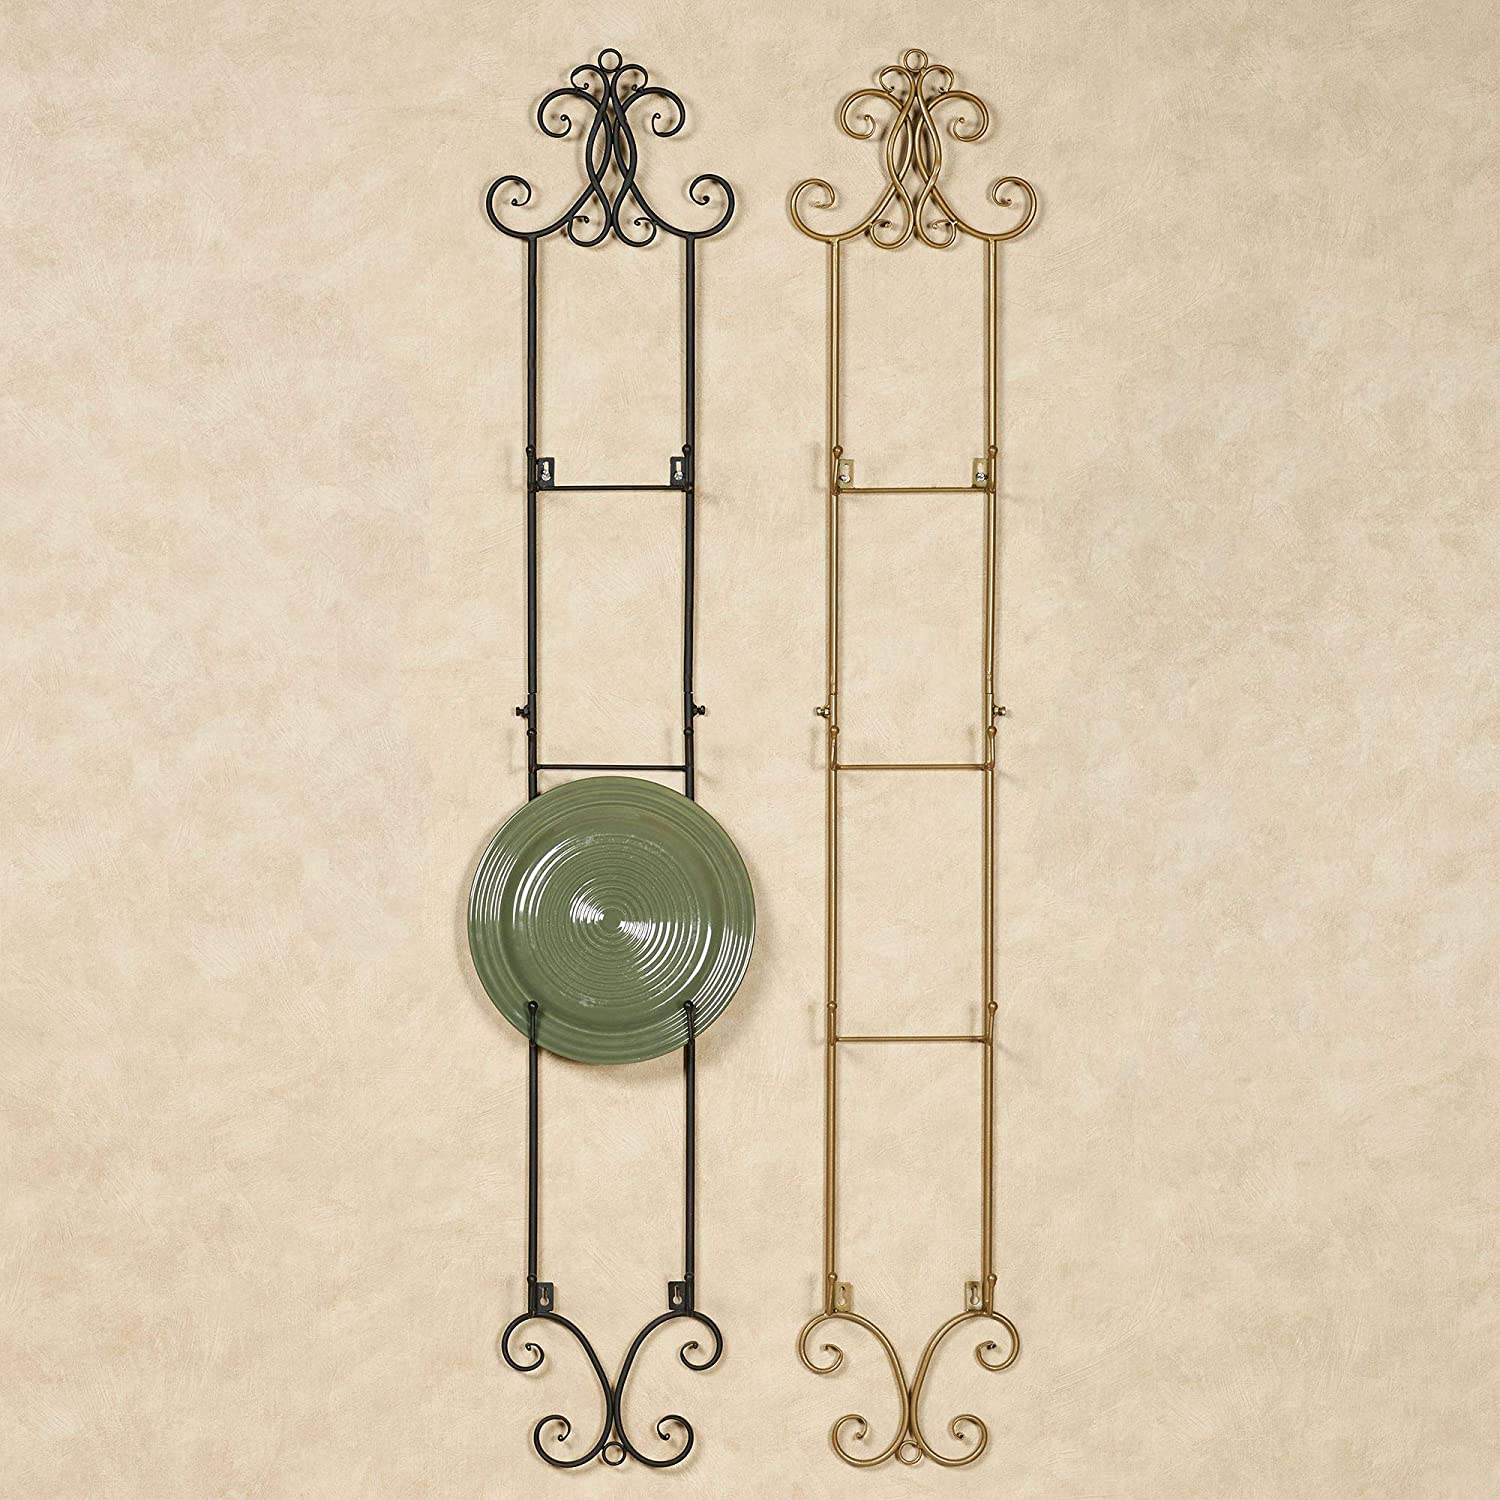 Decorative Plate Rack Wall Mount from images-na.ssl-images-amazon.com